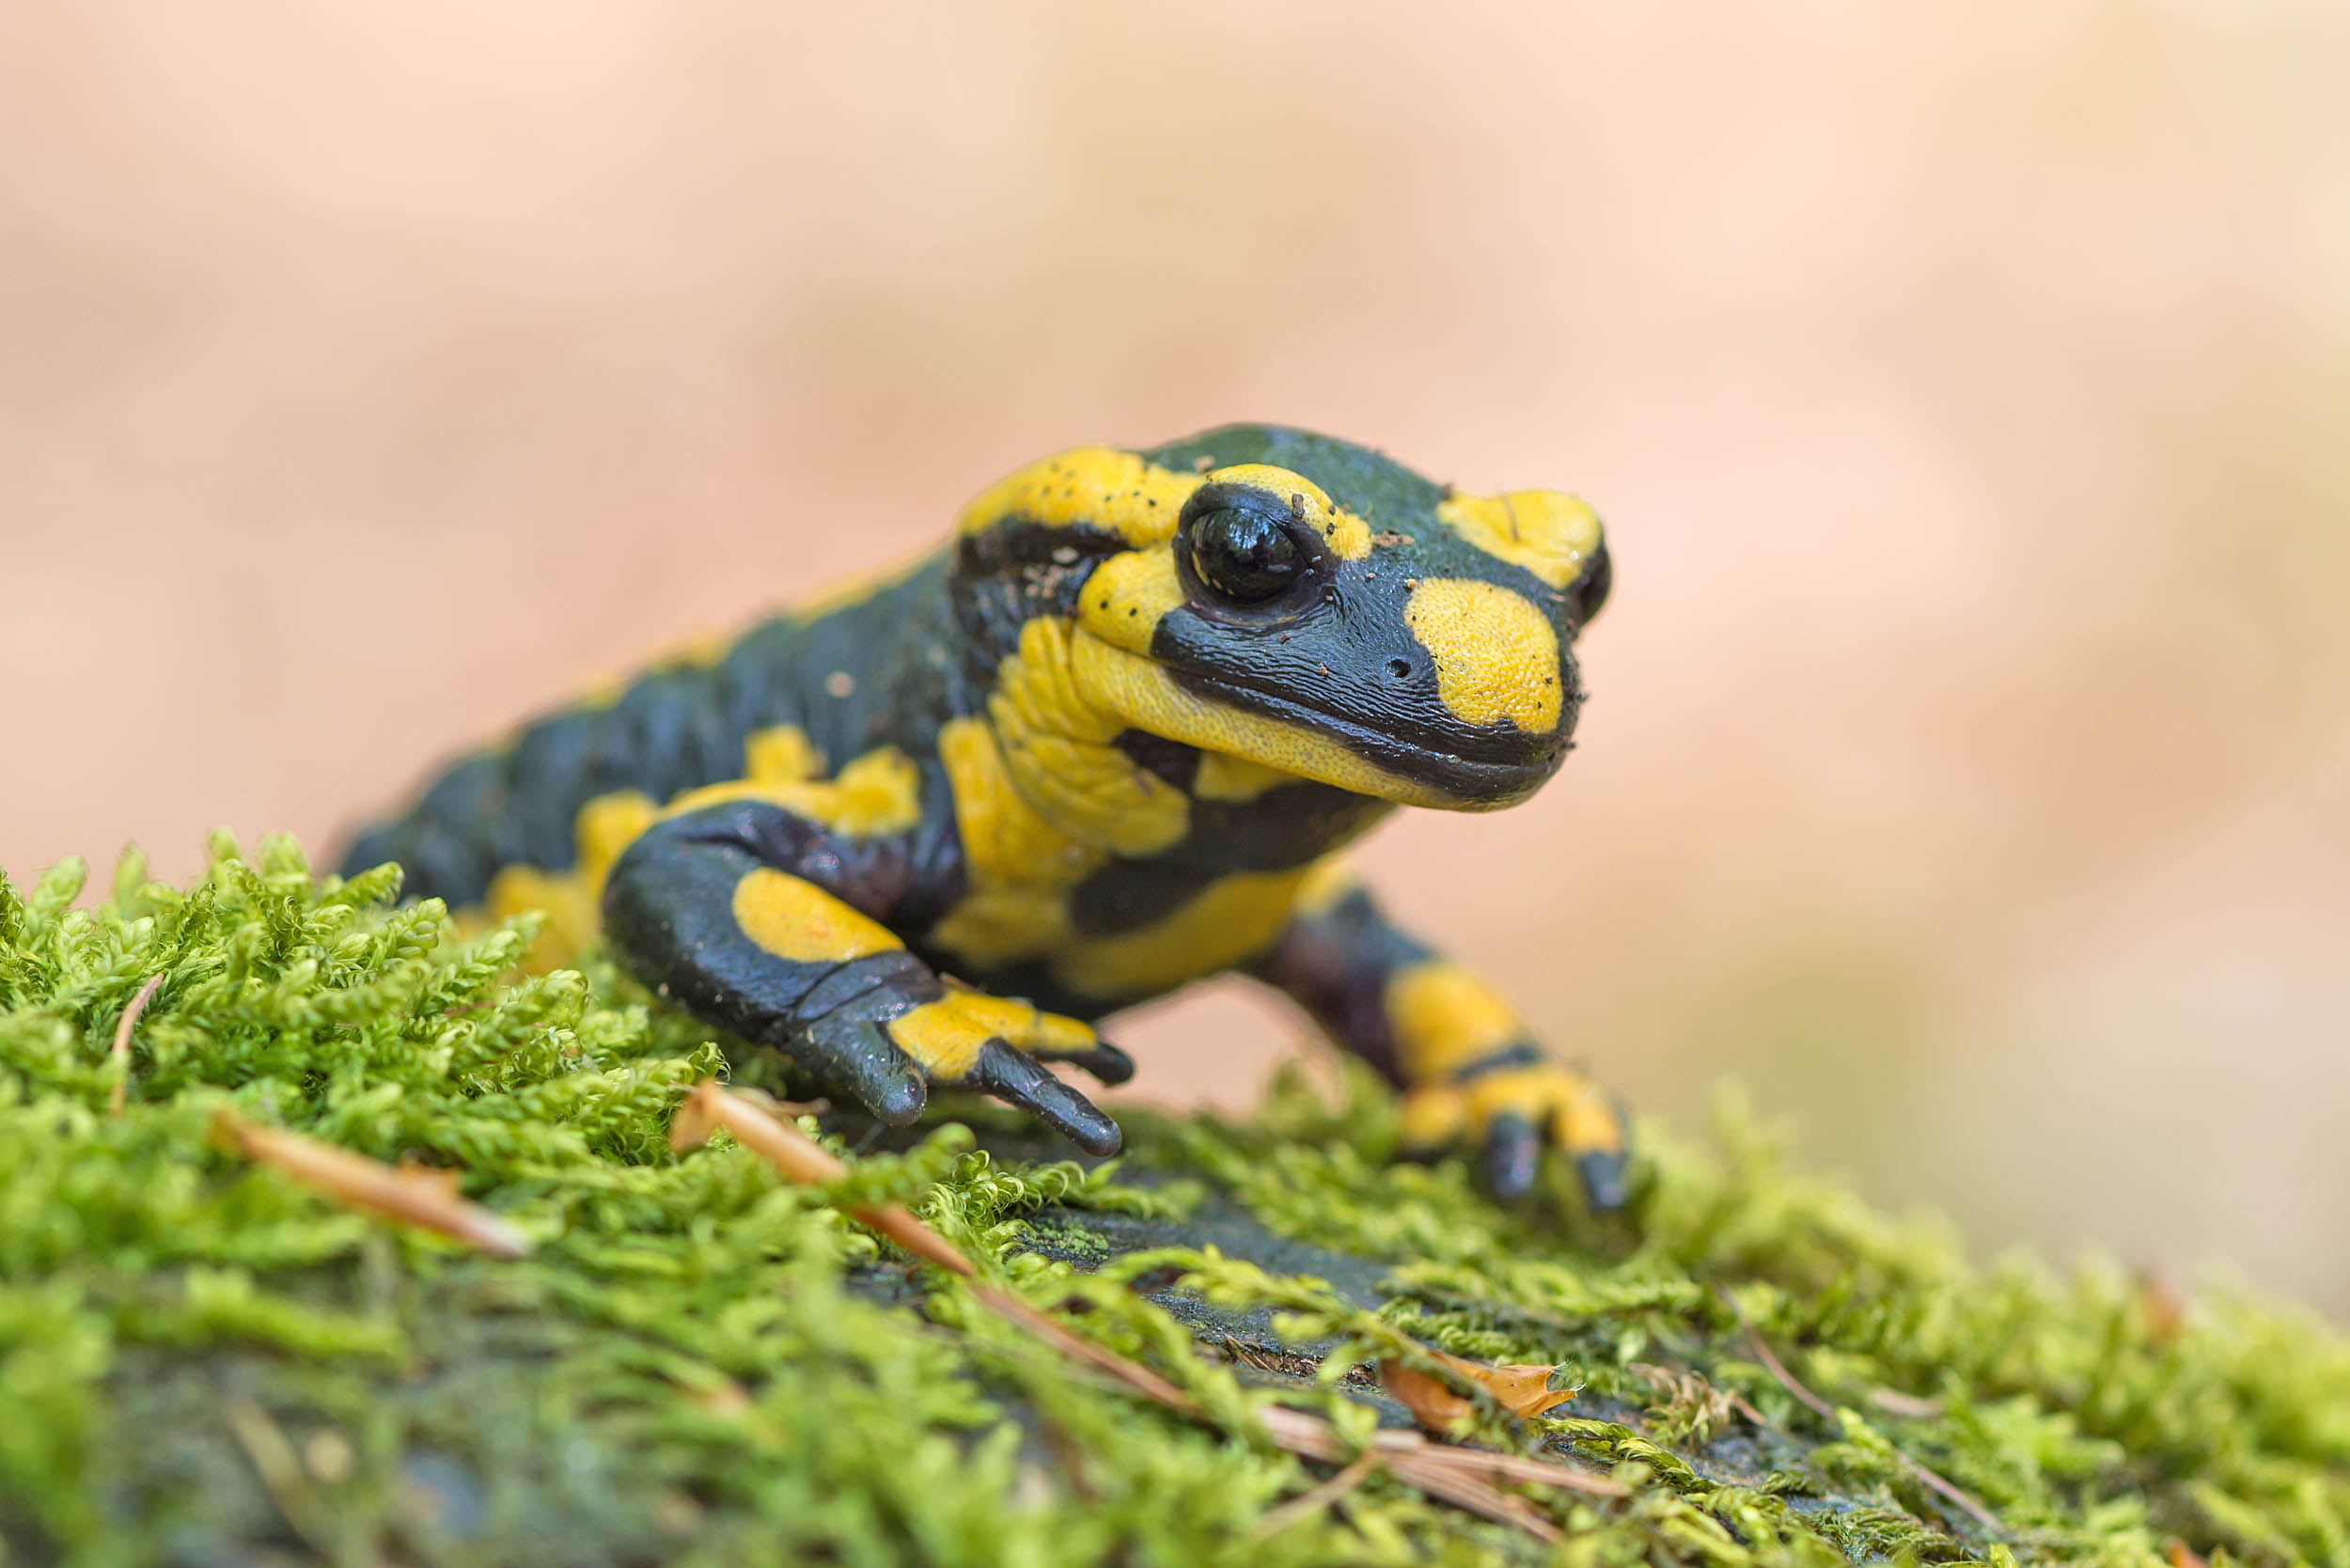 Salamanders will travel up to 9 miles for sex